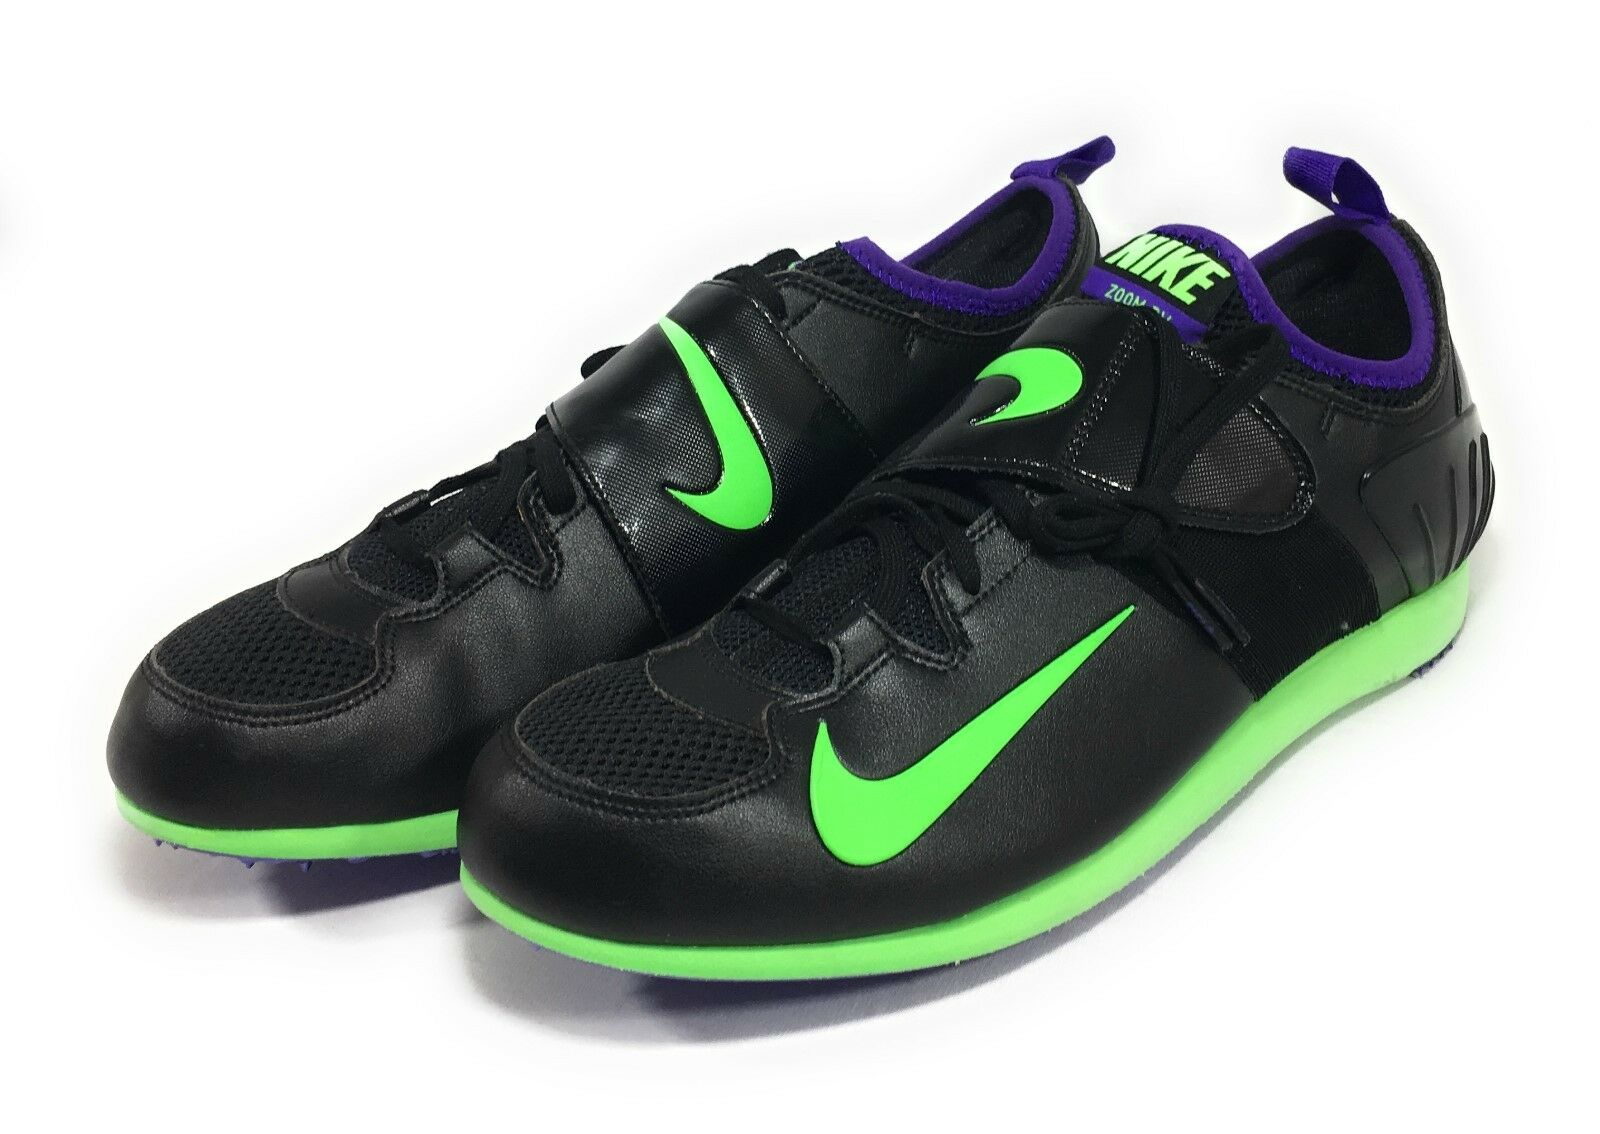 Nike Zoom PV II 2 Track & Field Shoes Men's Comfortable Cheap and beautiful fashion